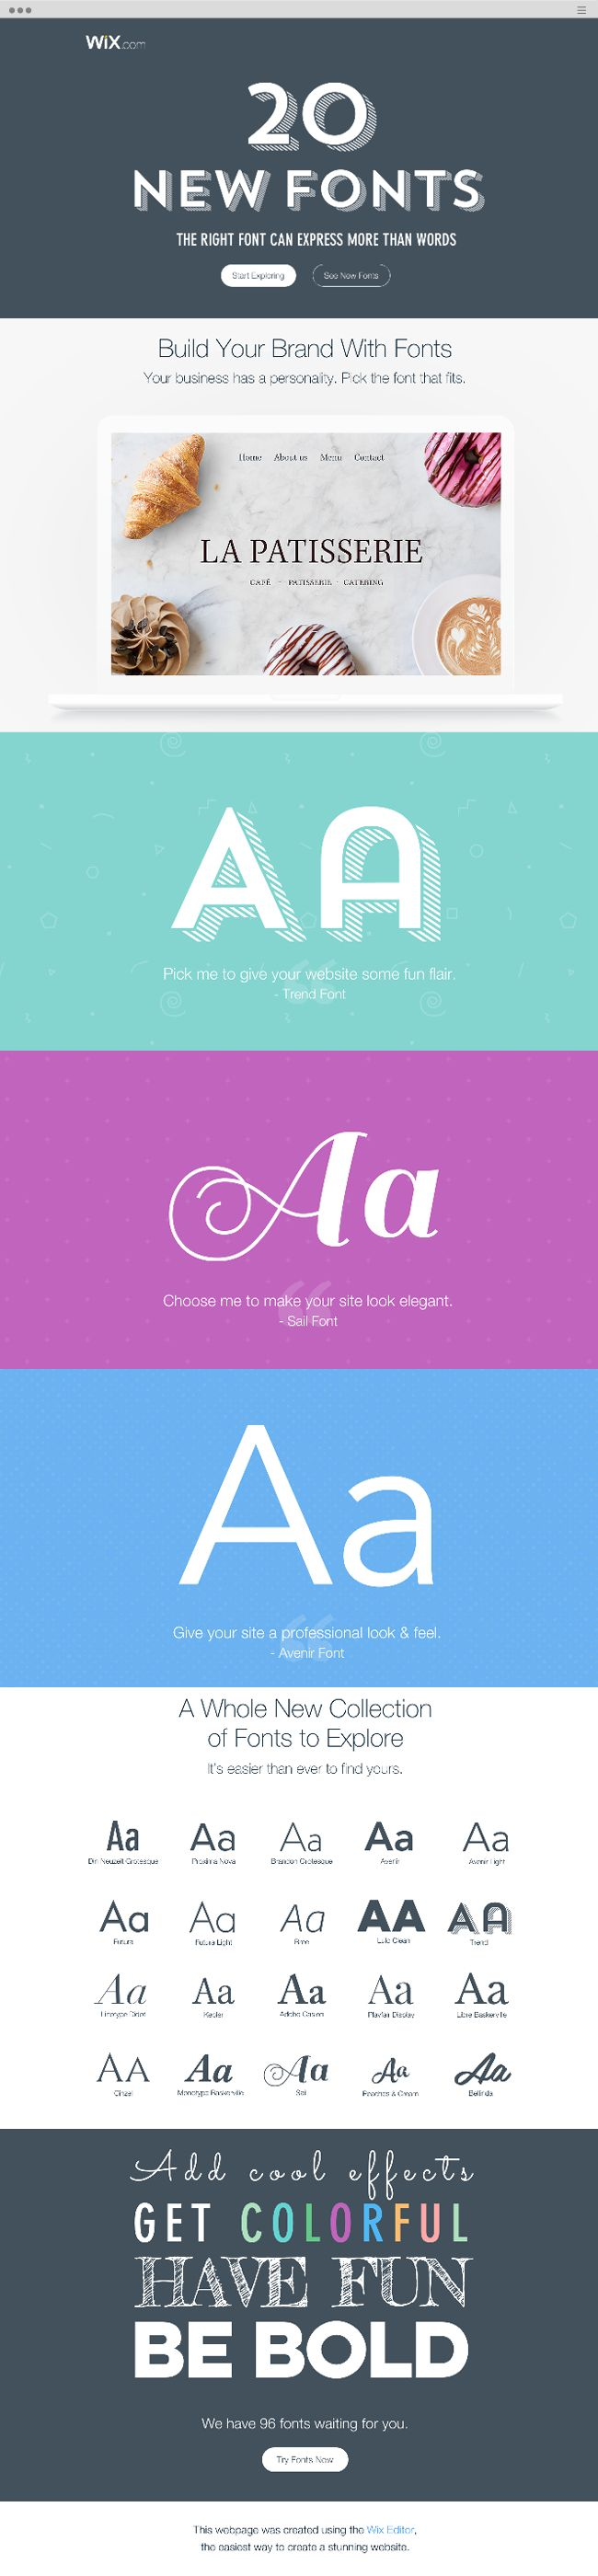 Wix.com now has 20 stunning new fonts to help express your message. Explore all the ways you can use fonts to make your site look amazing.